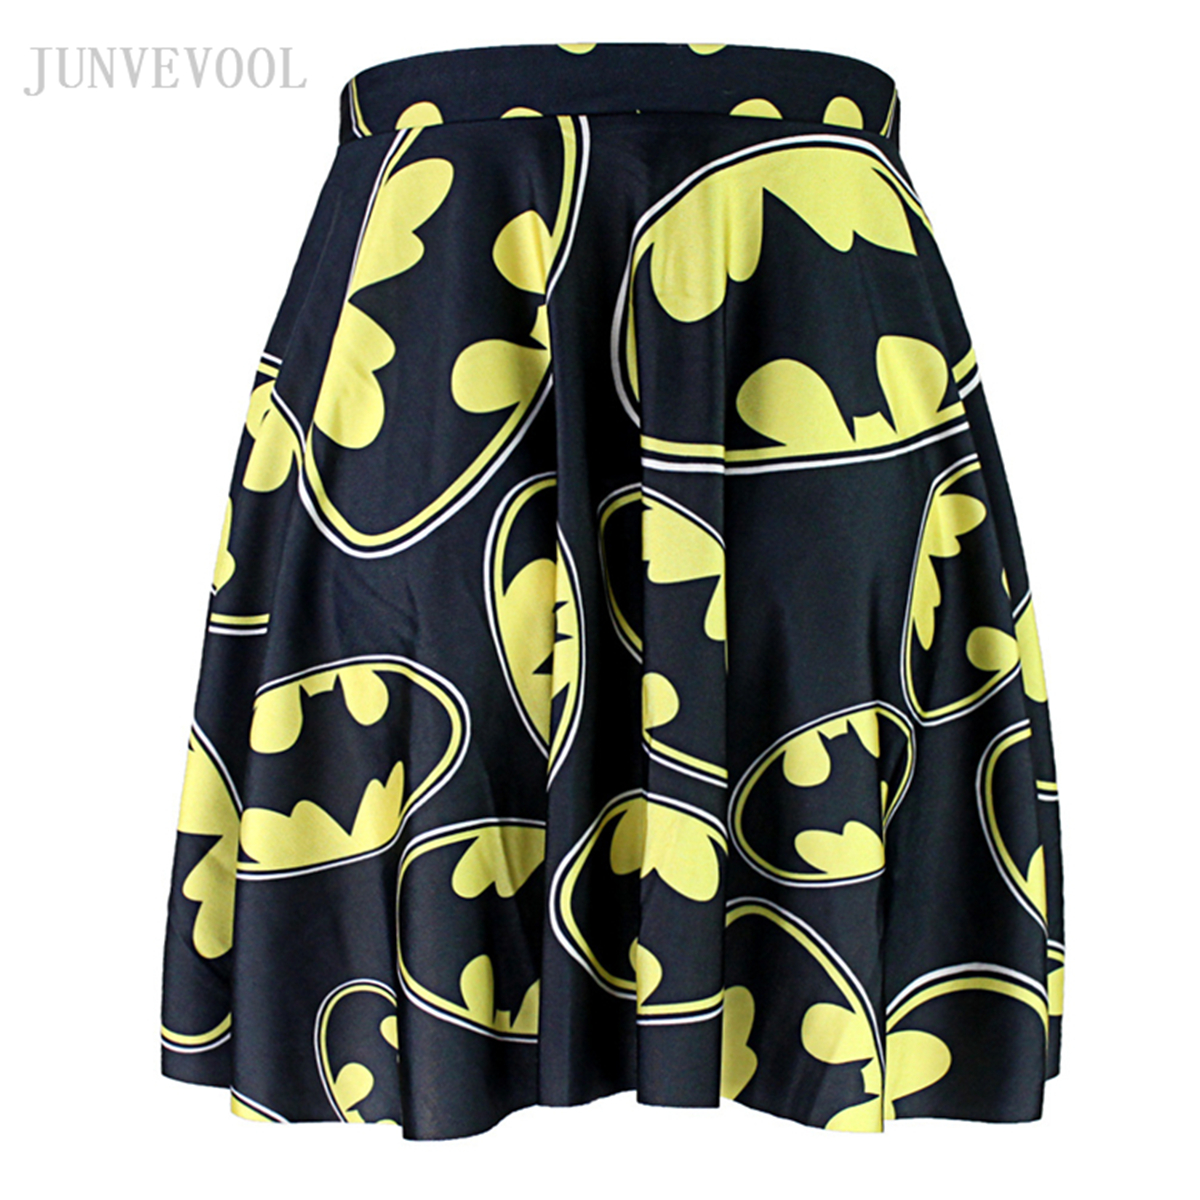 Fashion 3D Printed Skirt Women Sexy High Waist Hot Sale Clothing Digital Printing Stylish Mini Skirts Ladies Party Lovely Wear